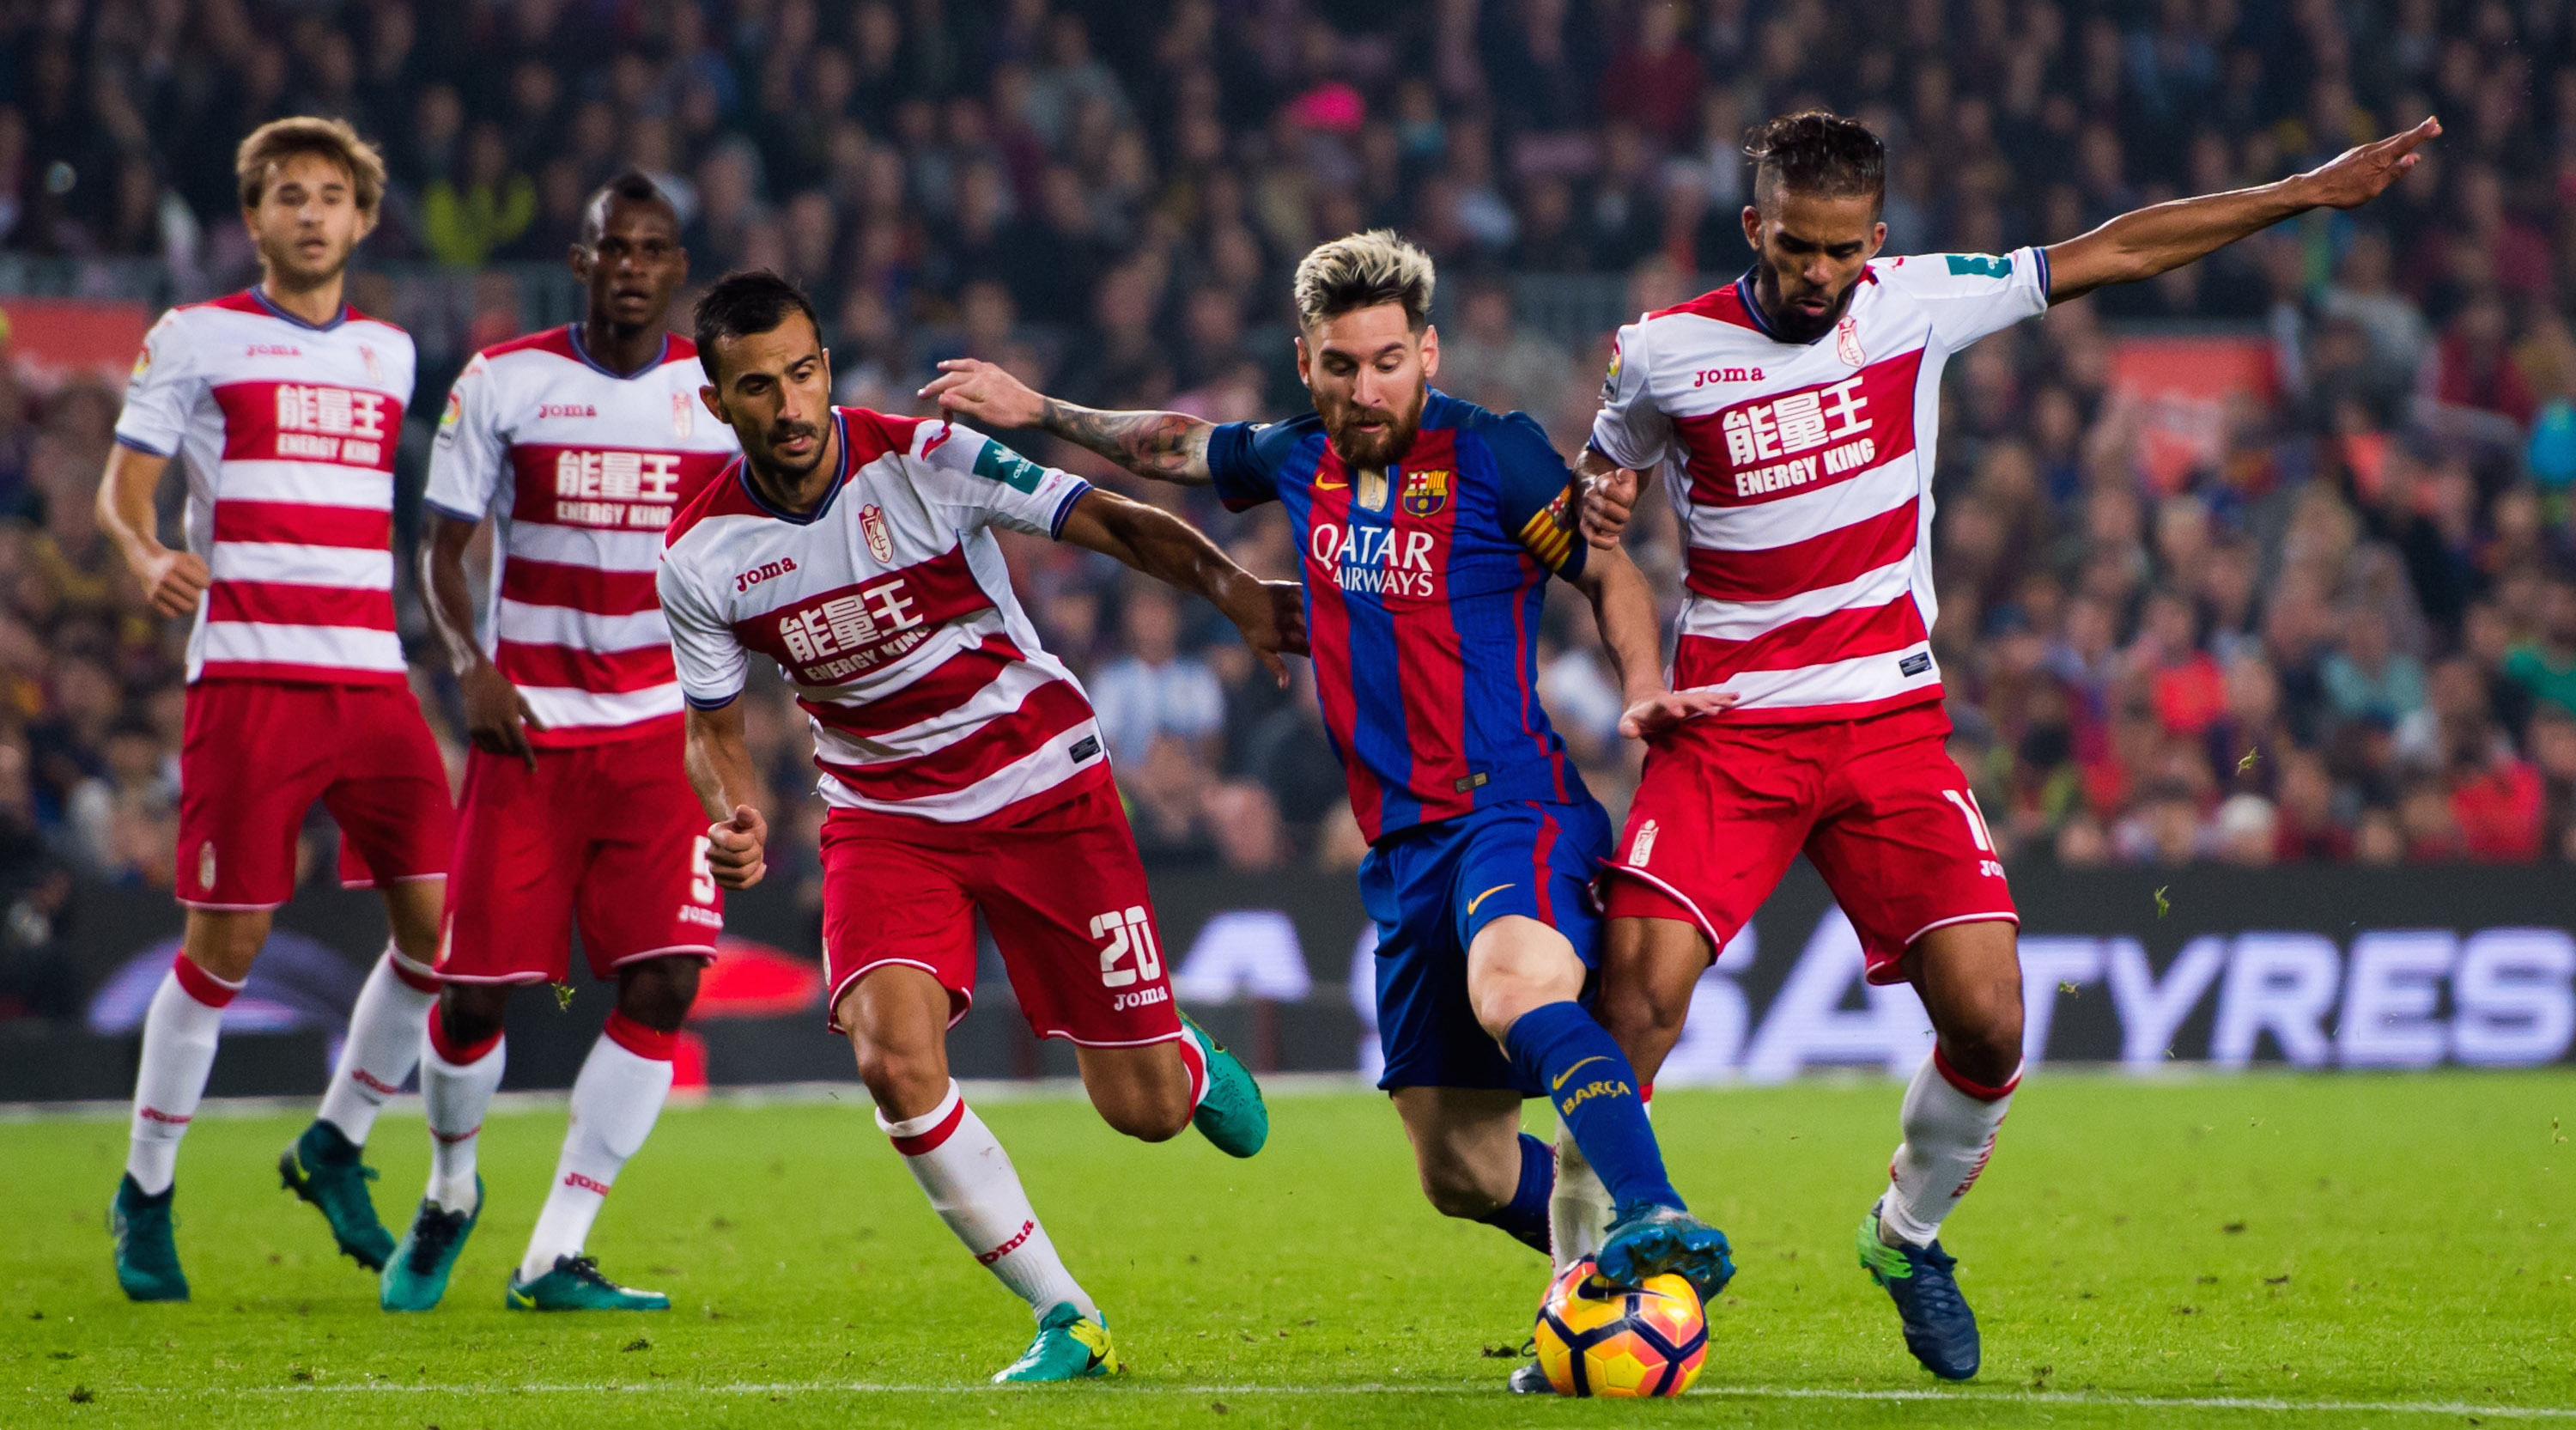 BARCELONA, SPAIN - OCTOBER 29: Lionel Messi (2nd R) of FC Barcelona fights for the ball with Mehdi Carcela-Gonzalez (R) and Matthieu Saunier (3rd R) of Granada CF during the La Liga match between FC Barcelona and Granada CF at Camp Nou stadium on October 29, 2016 in Barcelona, Spain. (Photo by Alex Caparros/Getty Images)